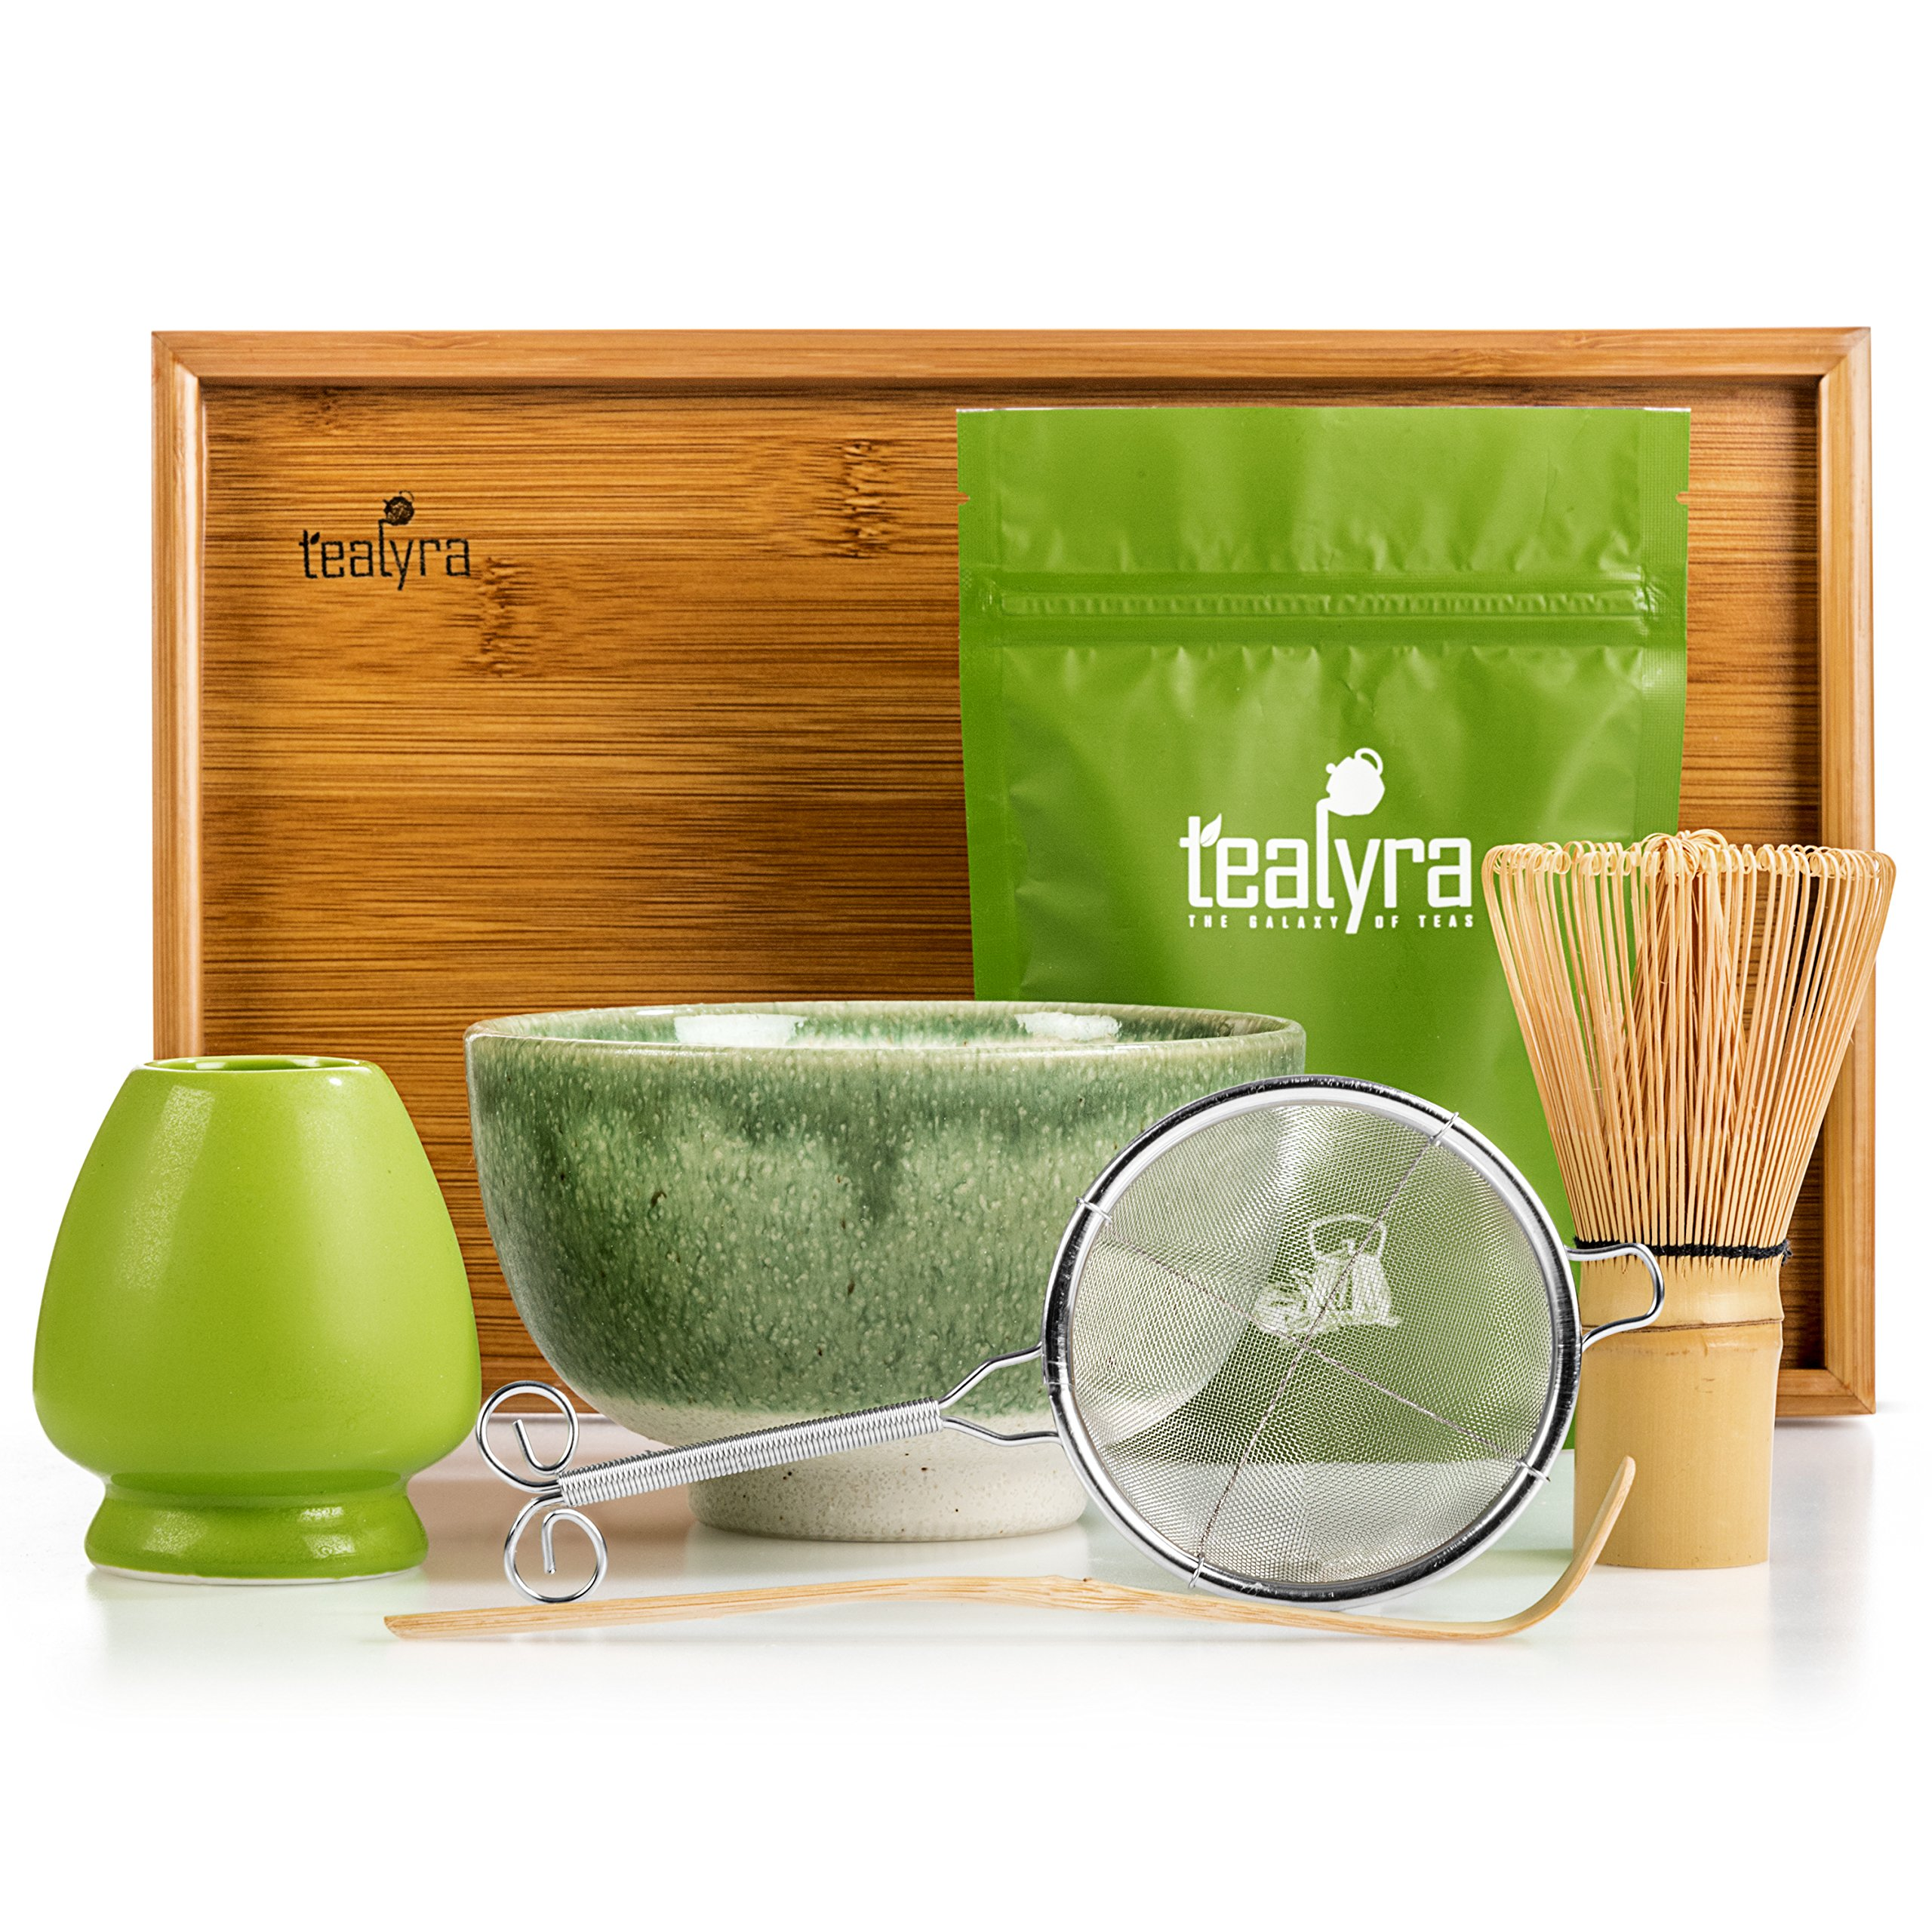 Tealyra - Matcha Kit - Connoisseur Ceremony Start Up Set - Premium Matcha Tea Powder - Japanese Made Green Bowl - Bamboo Whisk Scoop and Tray - Holder - Sifter by Tealyra